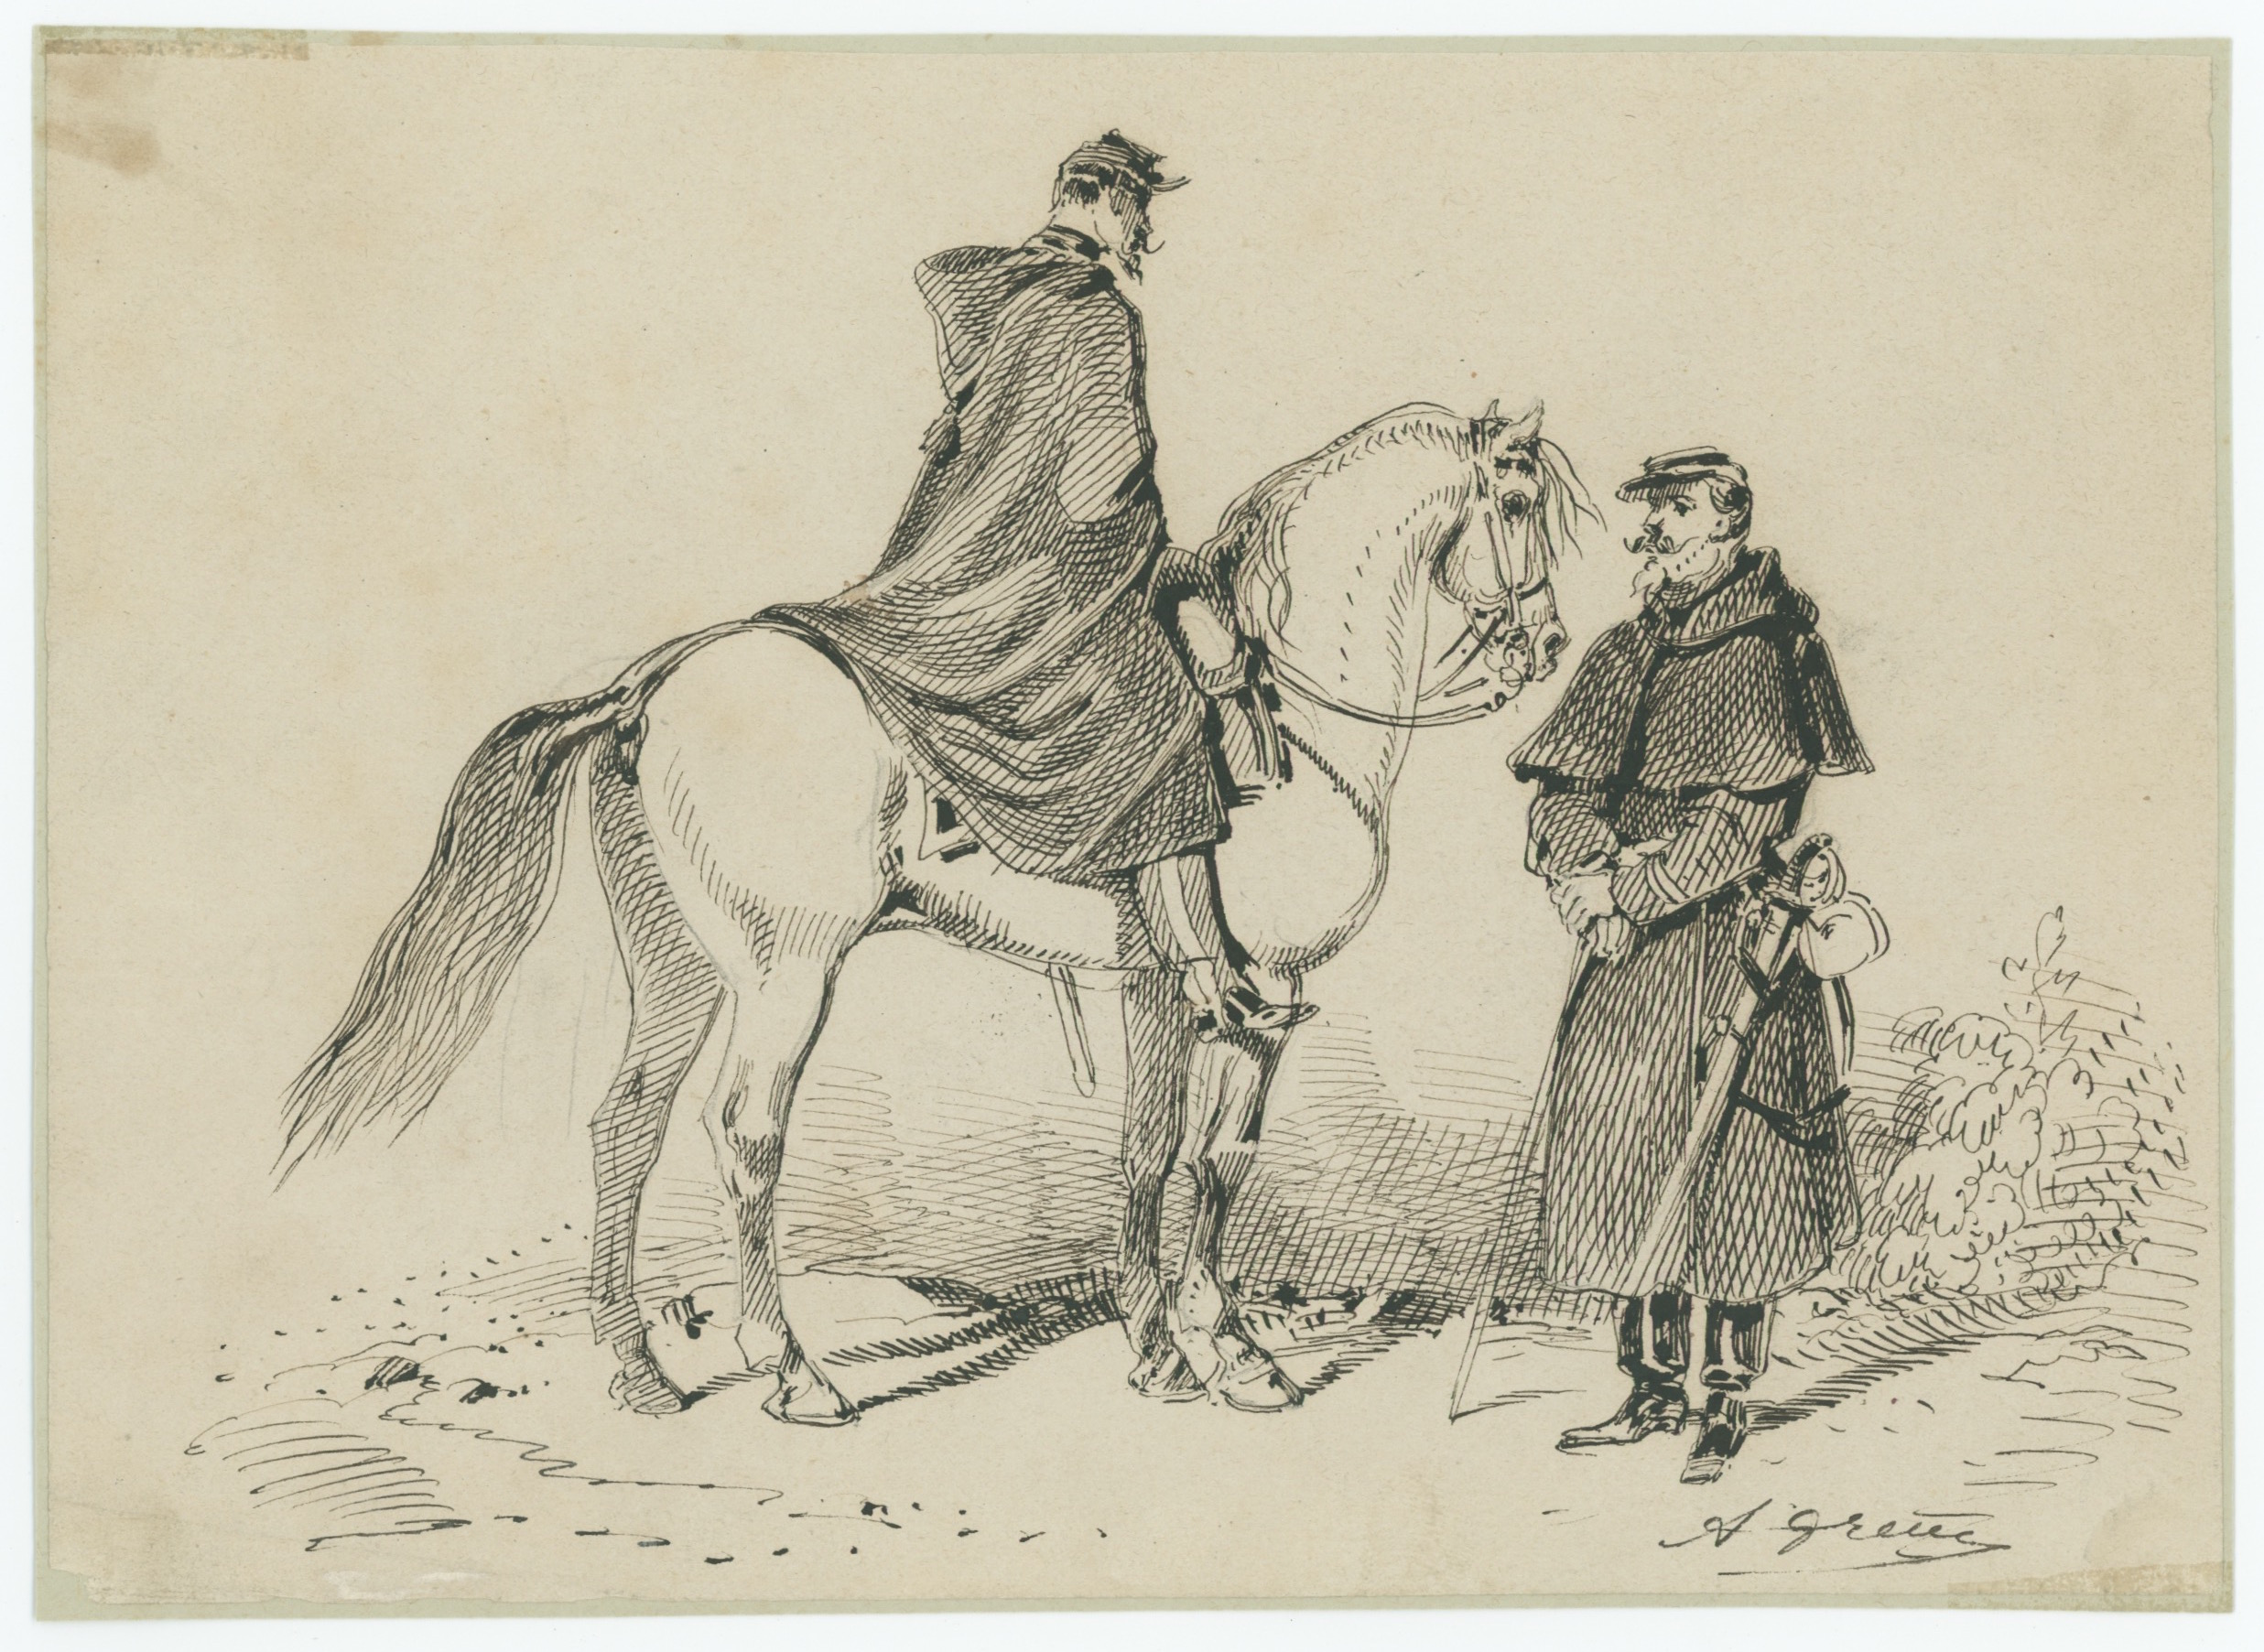 Dessin à la plume - Cheval - Officier - Infanterie - 1860/1870 - Uniforme - Second Empire - Criméen - Uniforme - Soldat